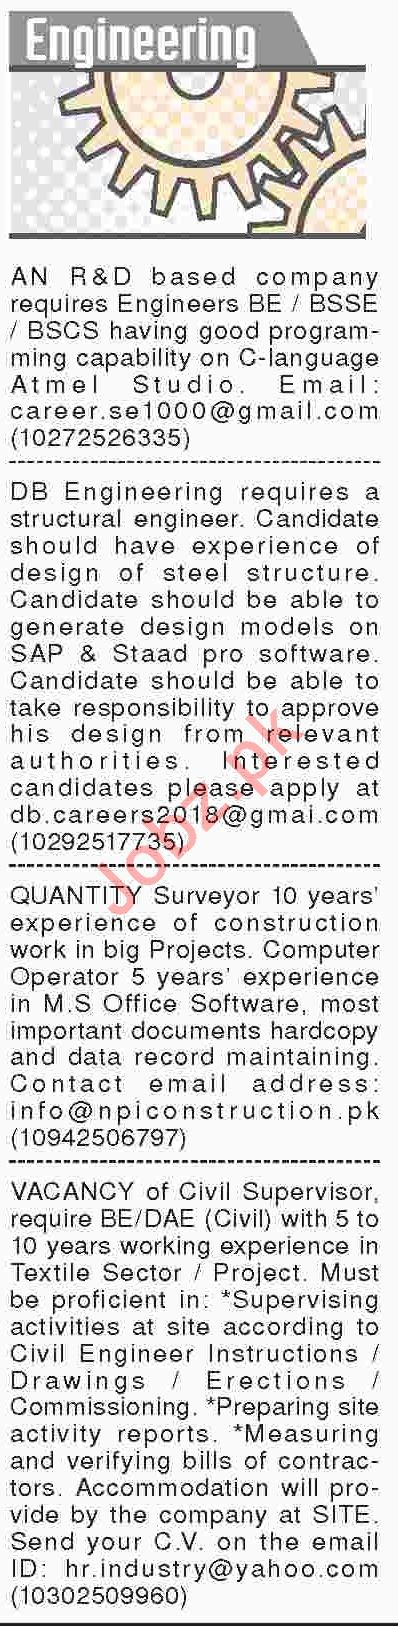 Dawn Sunday Classified Ads 13th Jan 2019 for Engineering